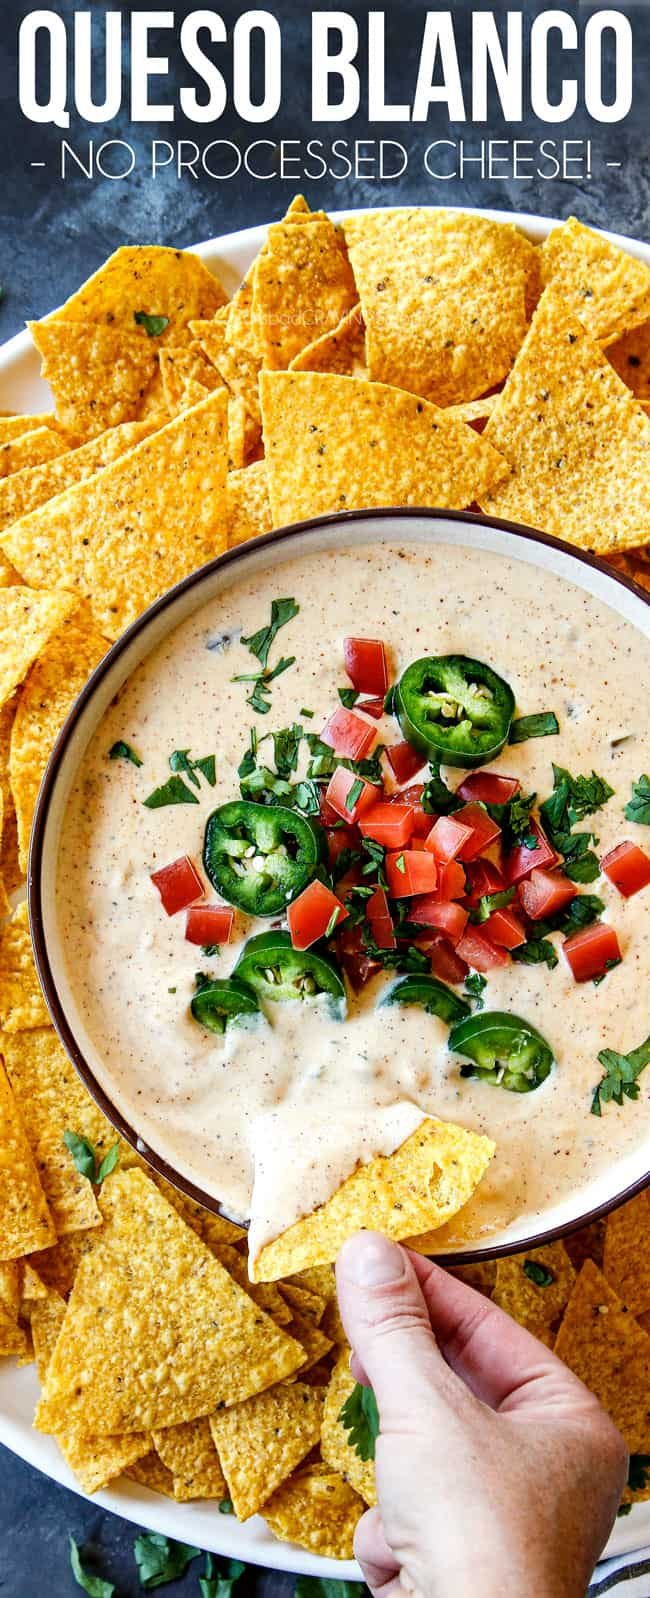 showing how to serve queso blanco by dipping chips into dip